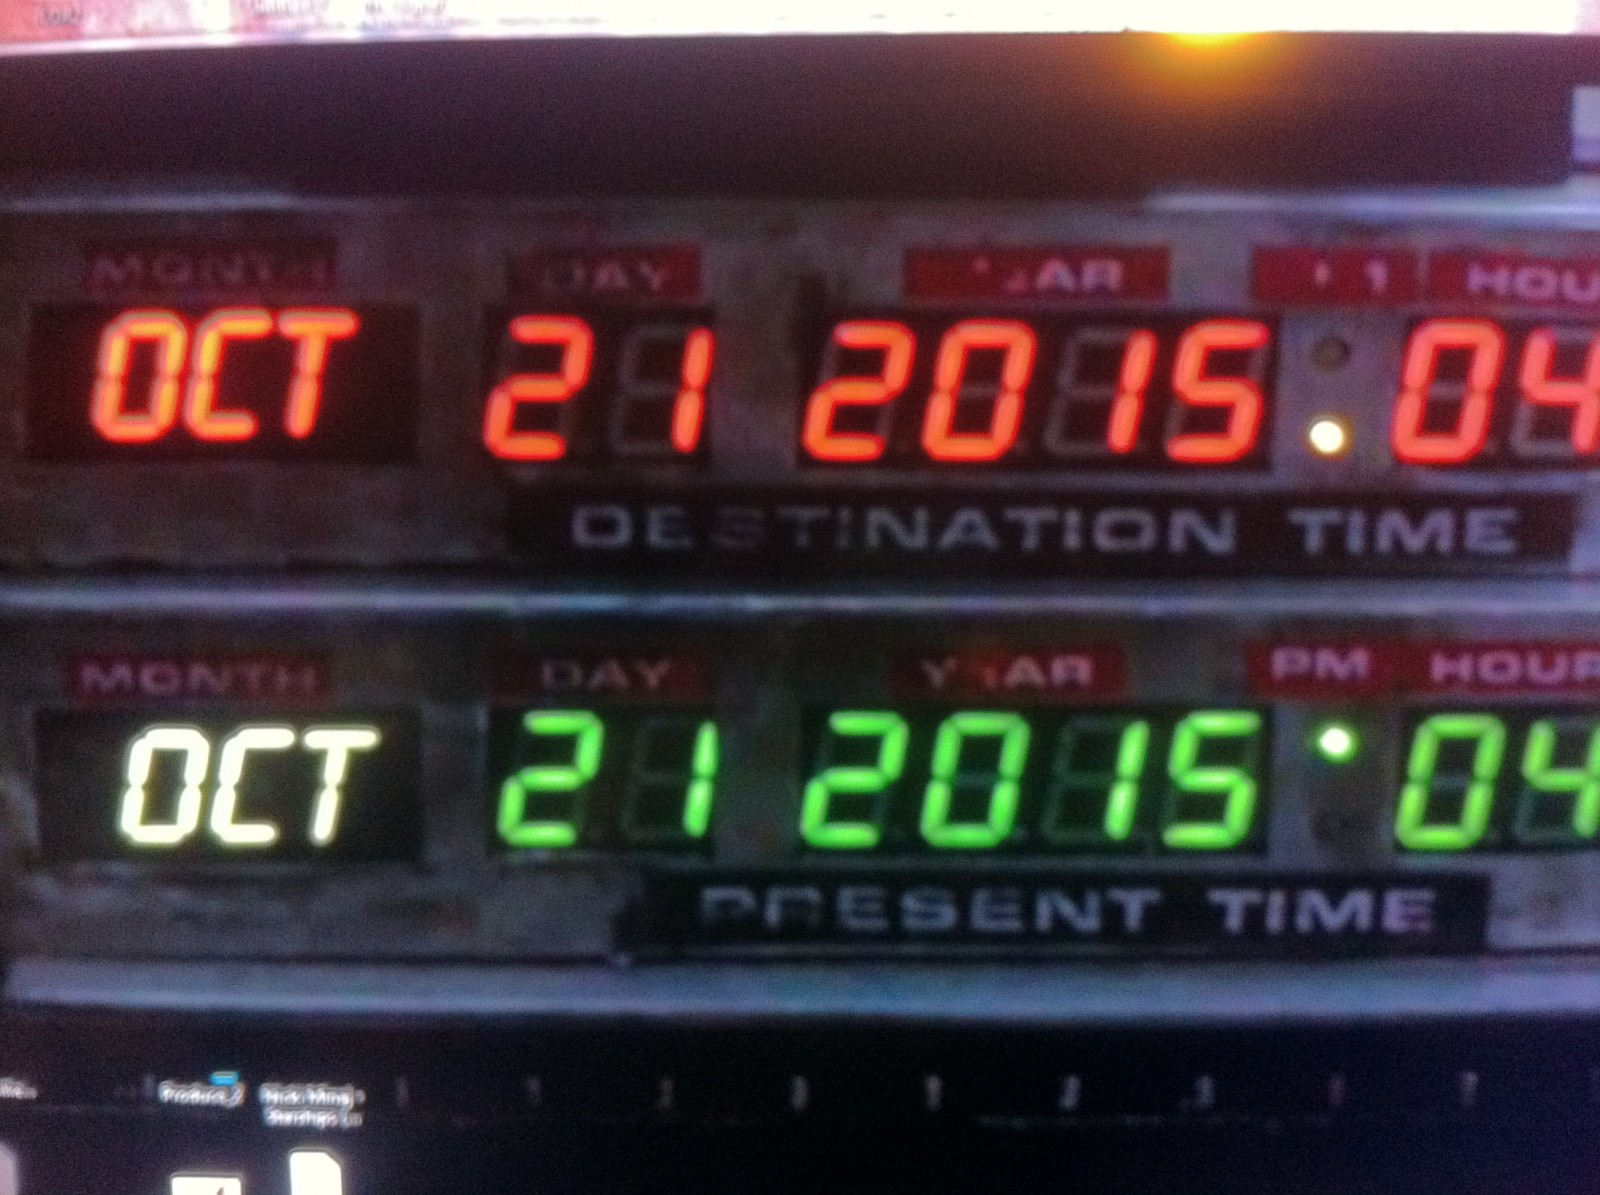 Back to the Future 2.... October 21st, 2015...4:29 PM....